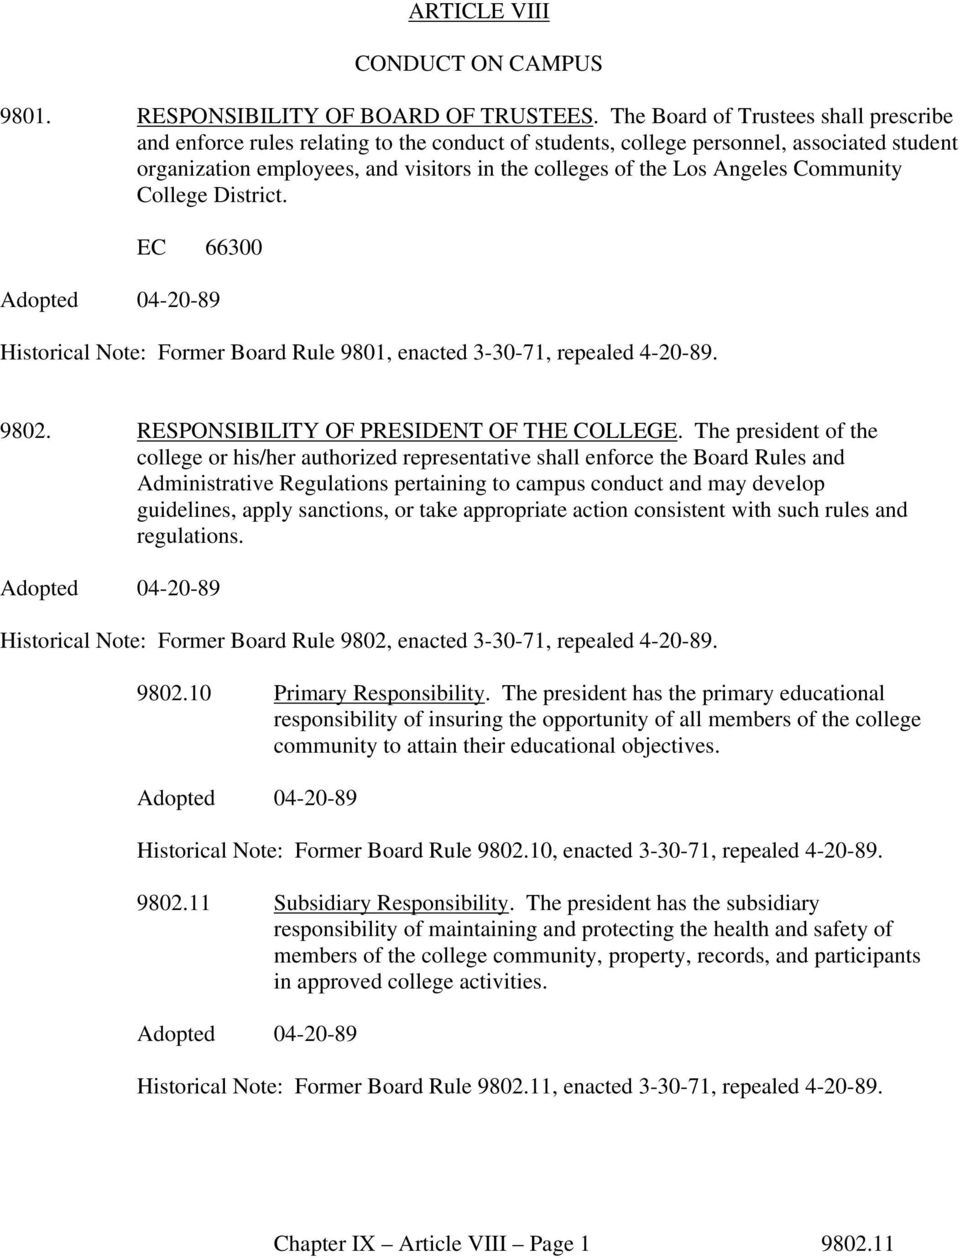 Angeles Community College District. EC 66300 Historical Note: Former Board Rule 9801, enacted 3-30-71, repealed 4-20-89. 9802. RESPONSIBILITY OF PRESIDENT OF THE COLLEGE.